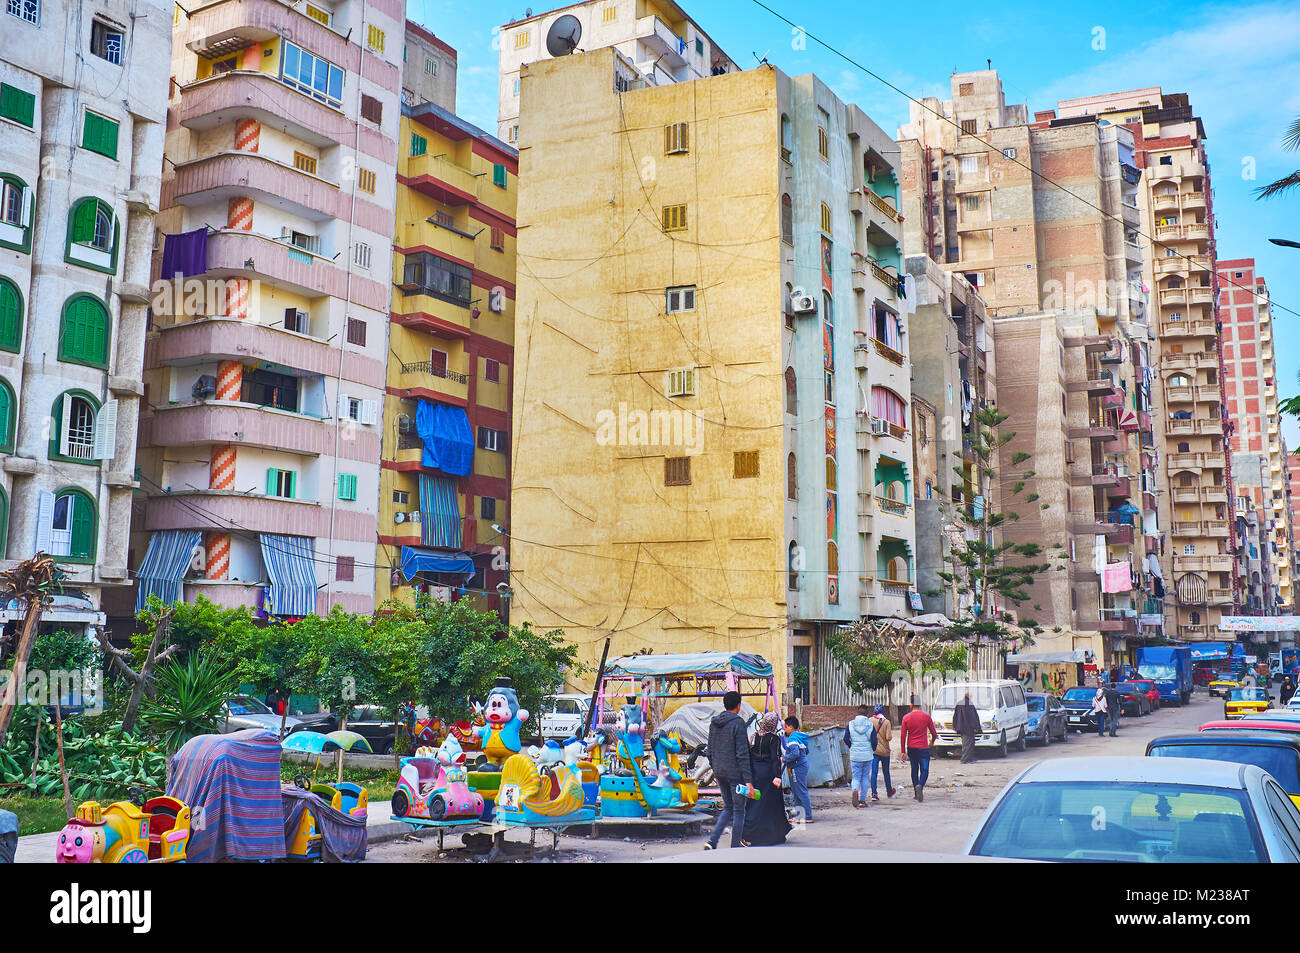 ALEXANDRIA, EGYPT - DECEMBER 17, 2017: The densely populated urban neighborhood in Alexandria with many multistory - Stock Image